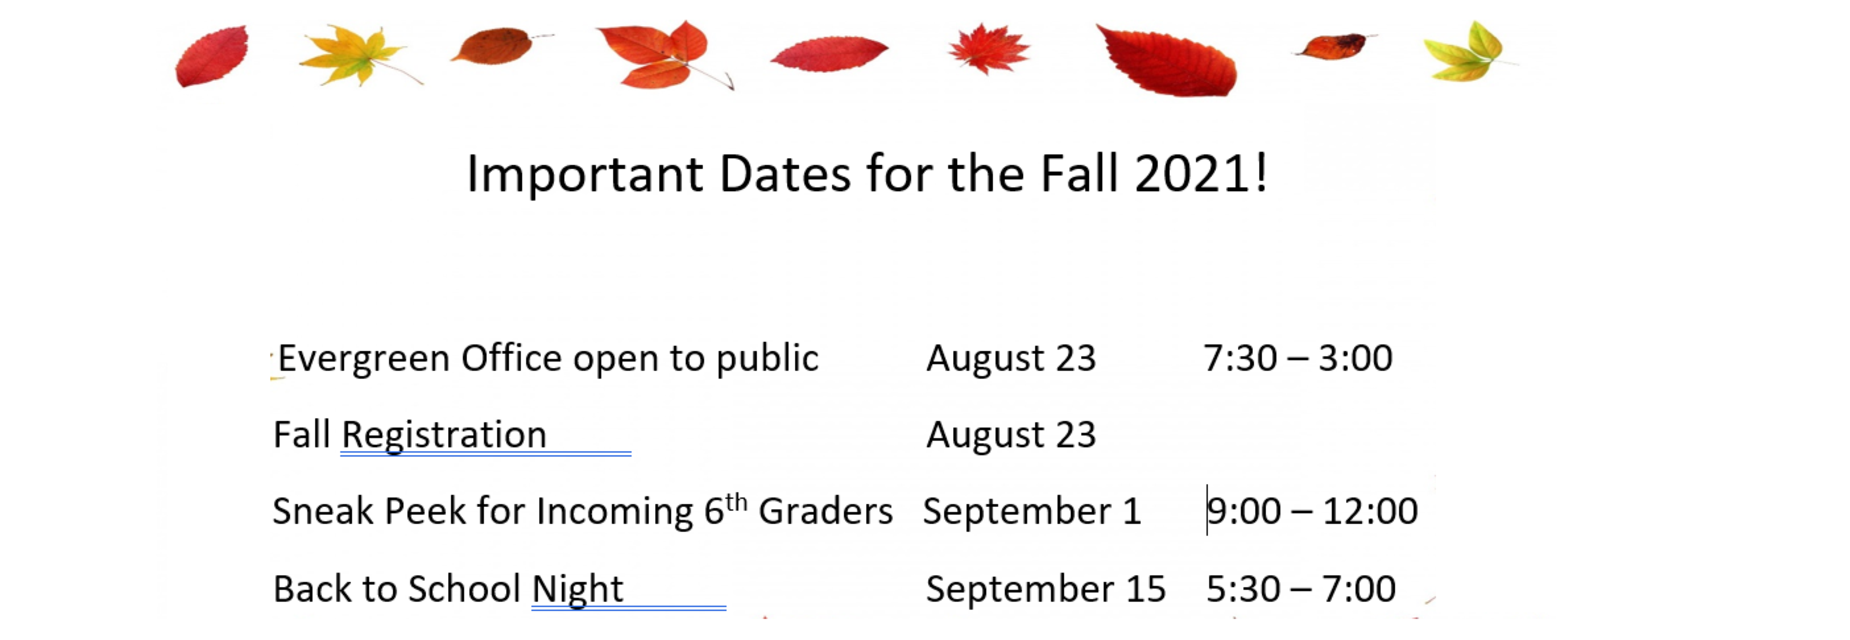 Dates for Fall 2021